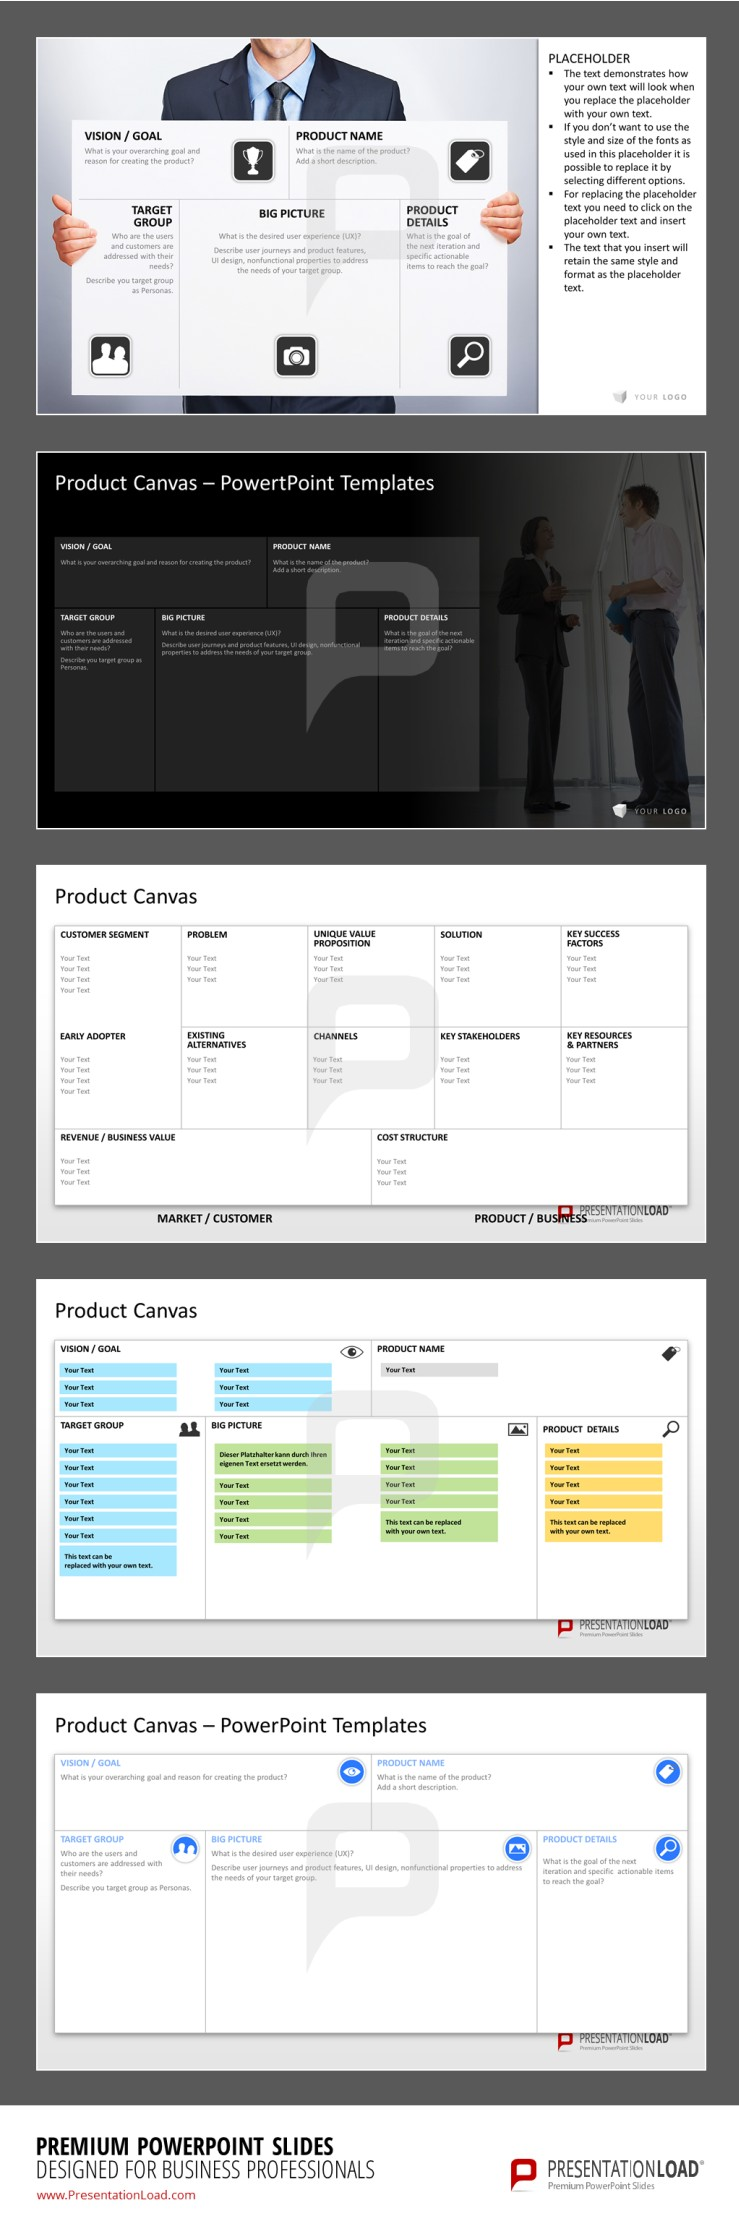 Product Canvas Powerpoint Template The Powerpoint Templates Contain